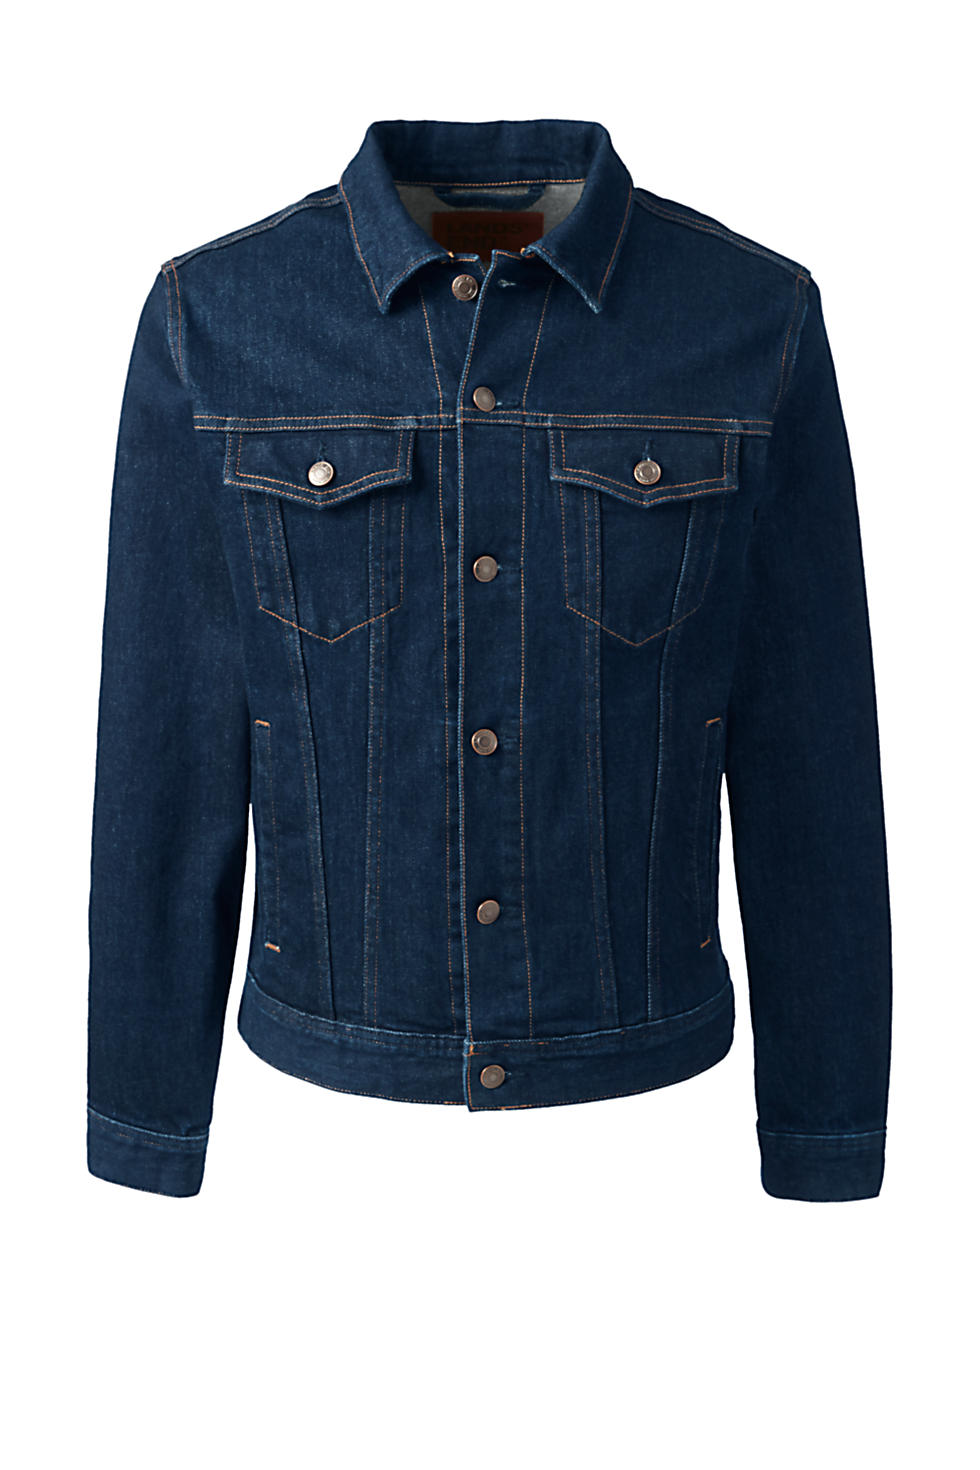 Lands End Mens Comfort First Denim Trucker Jacket